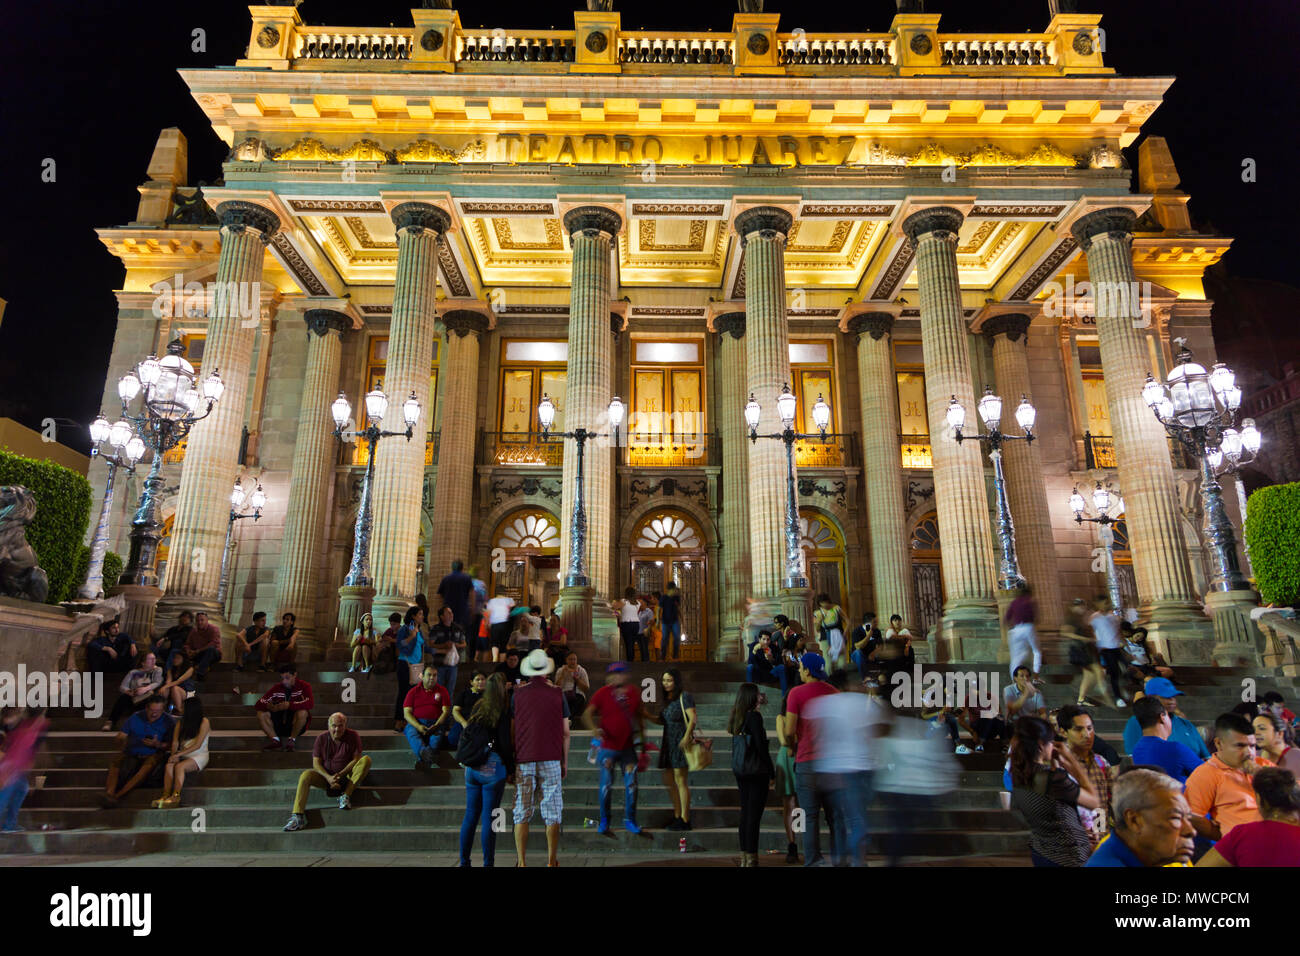 Tourist on the steps of the JUAREZ THEATER at night - GUANAJUATO, MEXICO Stock Photo